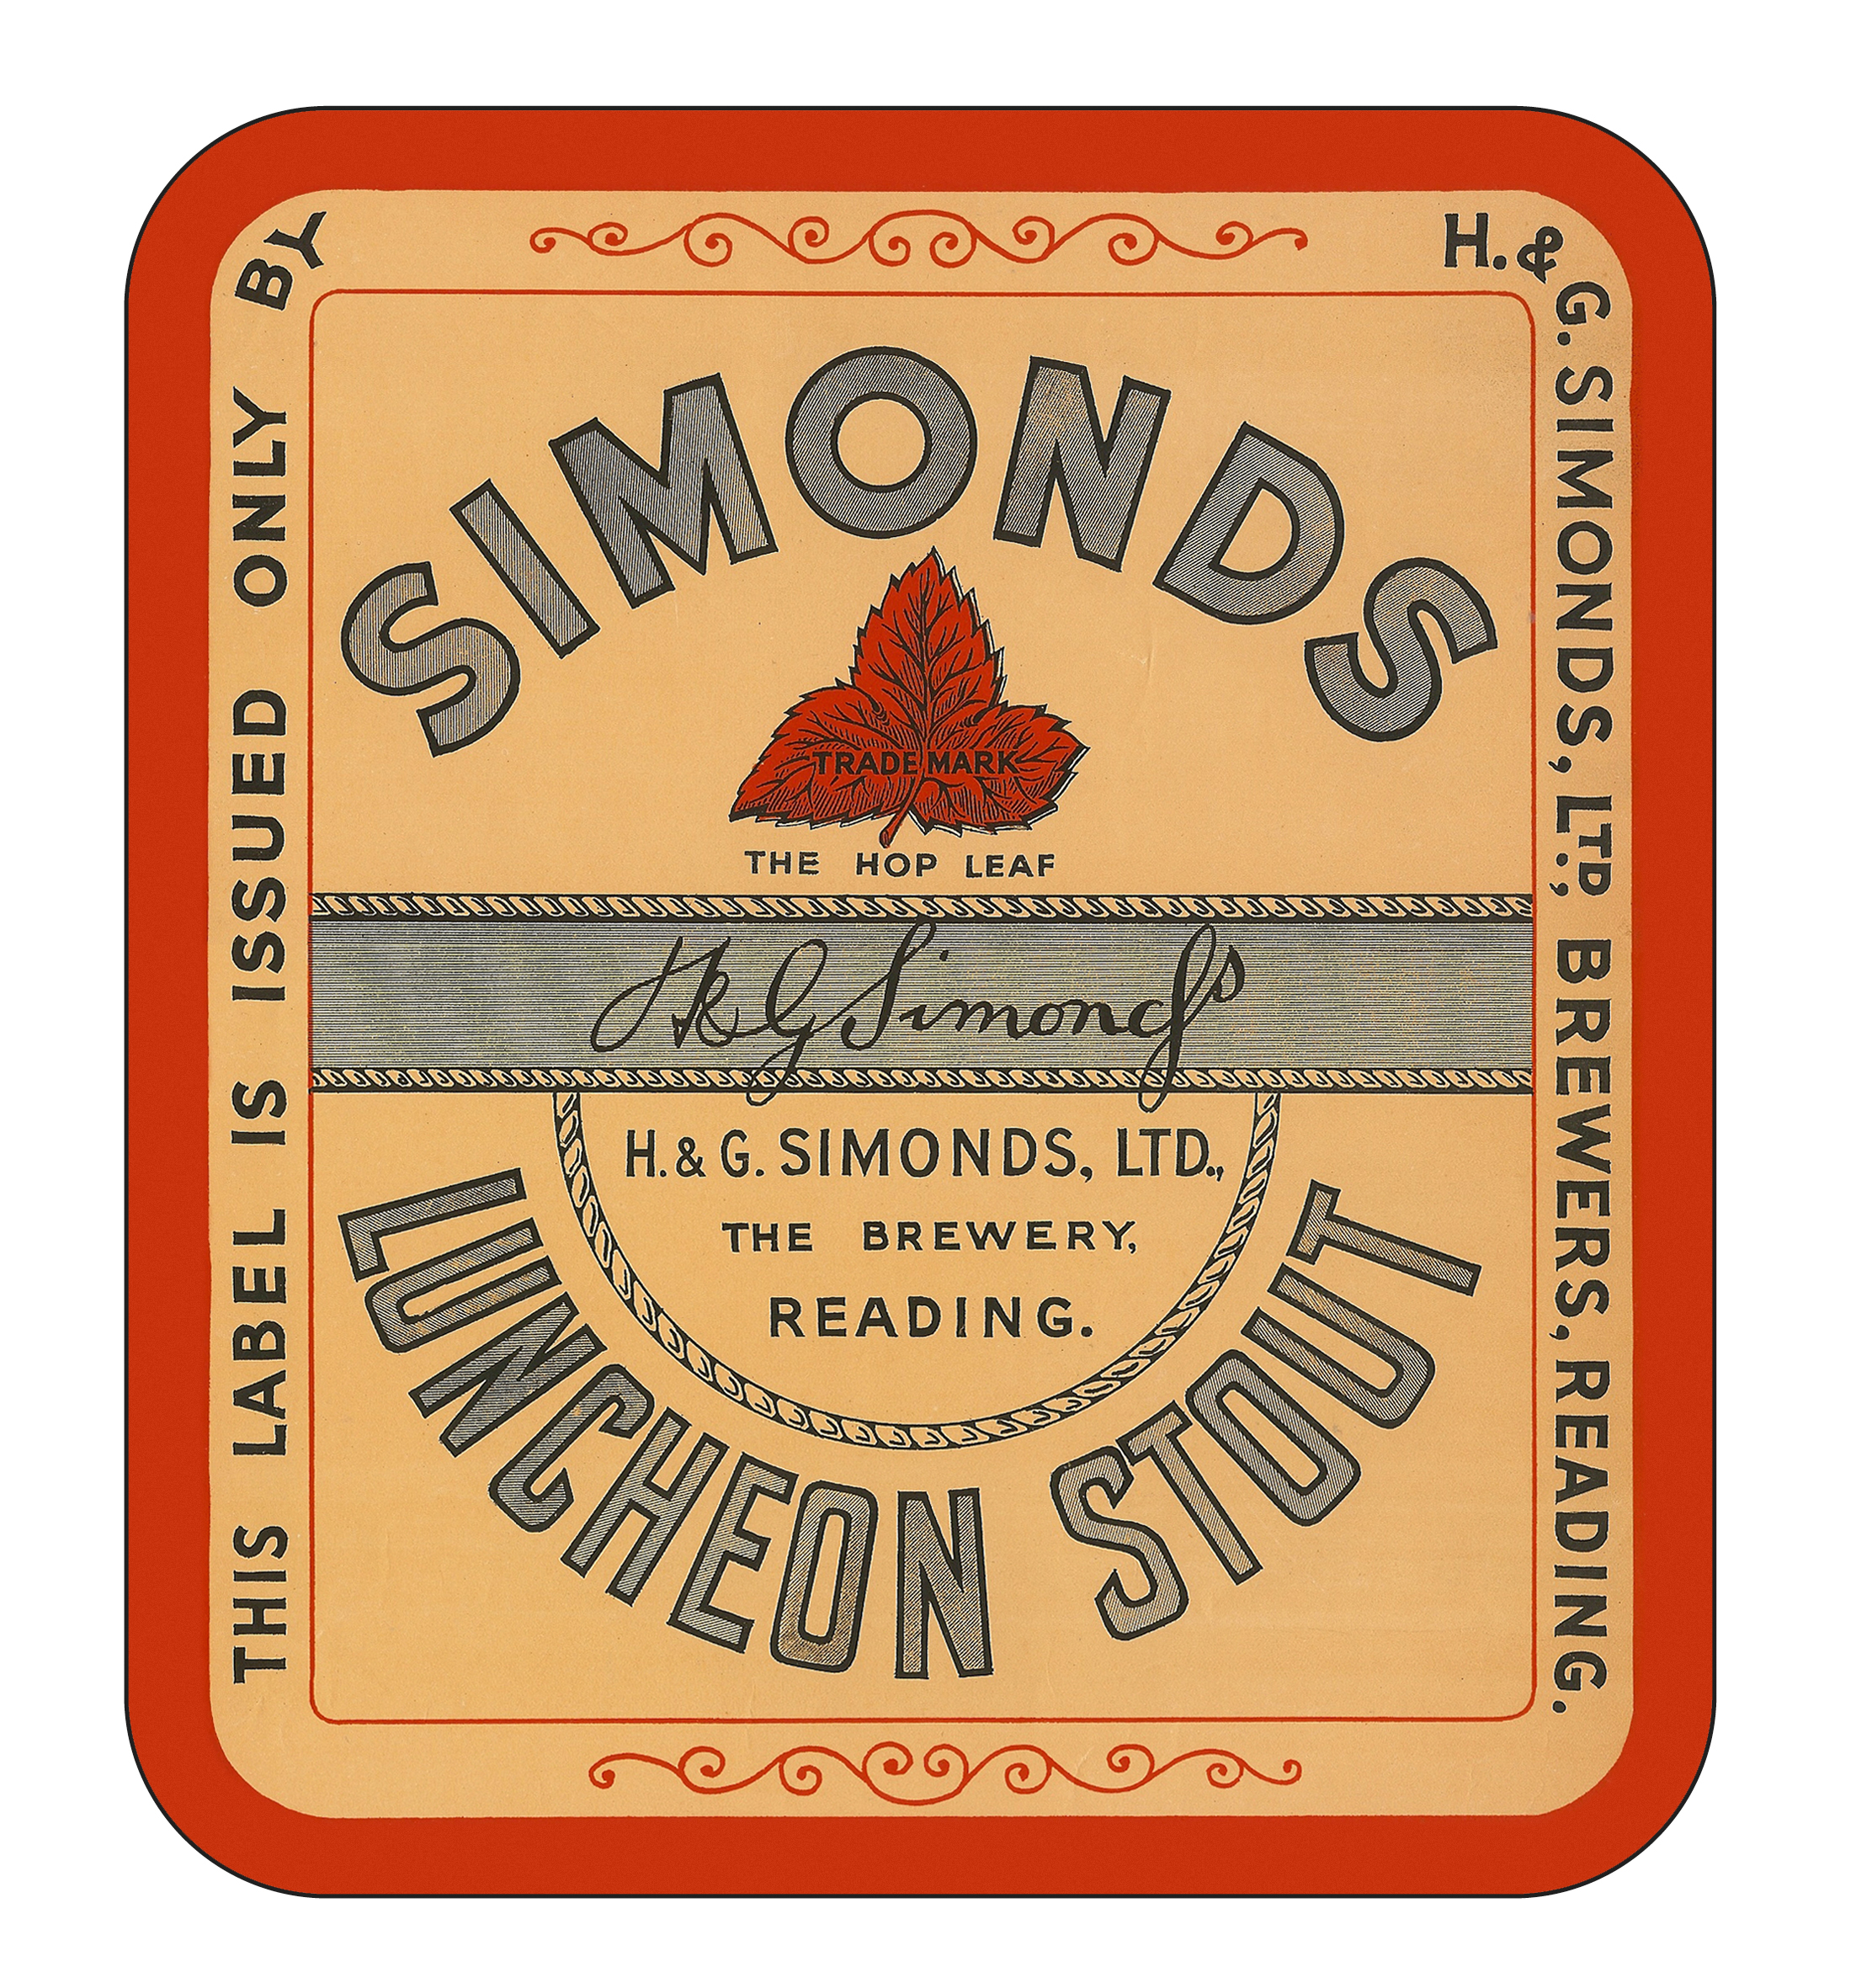 Luncheon Stout display label 24.2 x 27.4cms